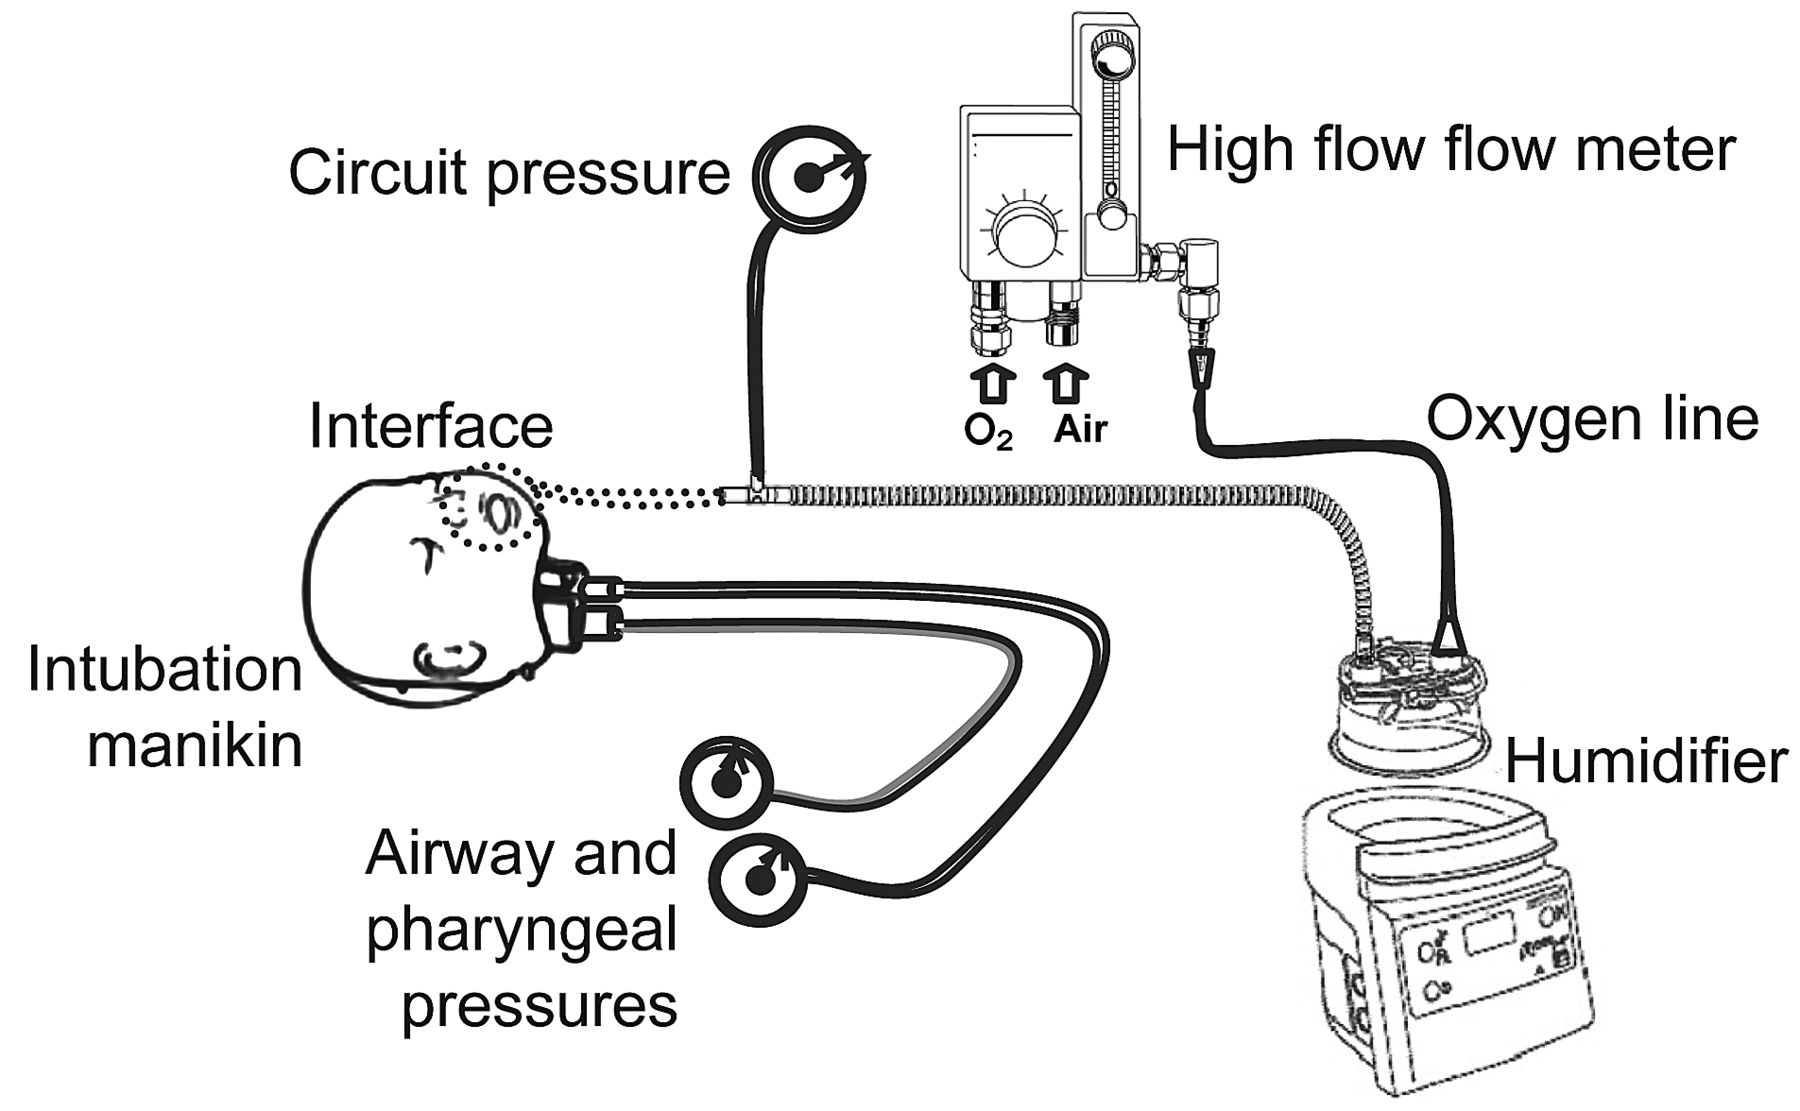 High Flow Oxygen Therapy Pressureysis In A Pediatric